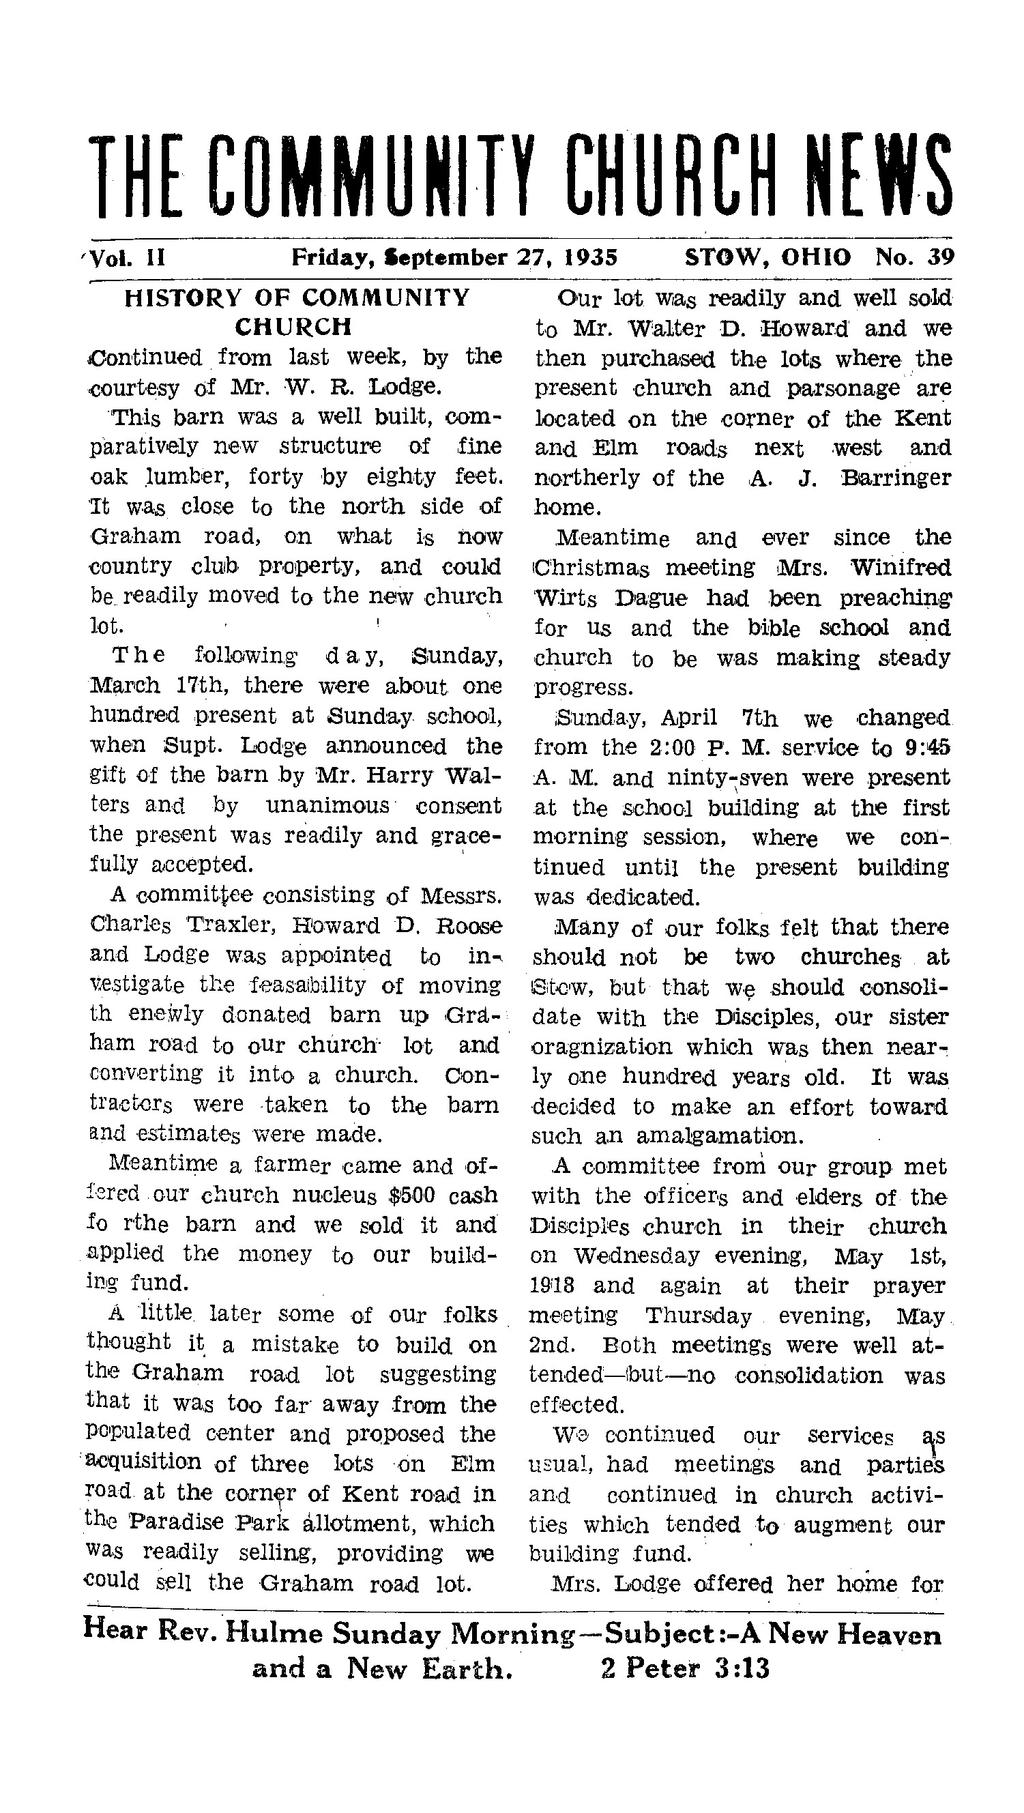 THE COMMUNITY CHURCH HEWS Vol. II Friday, September 27, 1935 HISTORY OF COMMUNITY CHURCH Continued from last week, by t h e courtesy of Mr. W. R. Lodge.